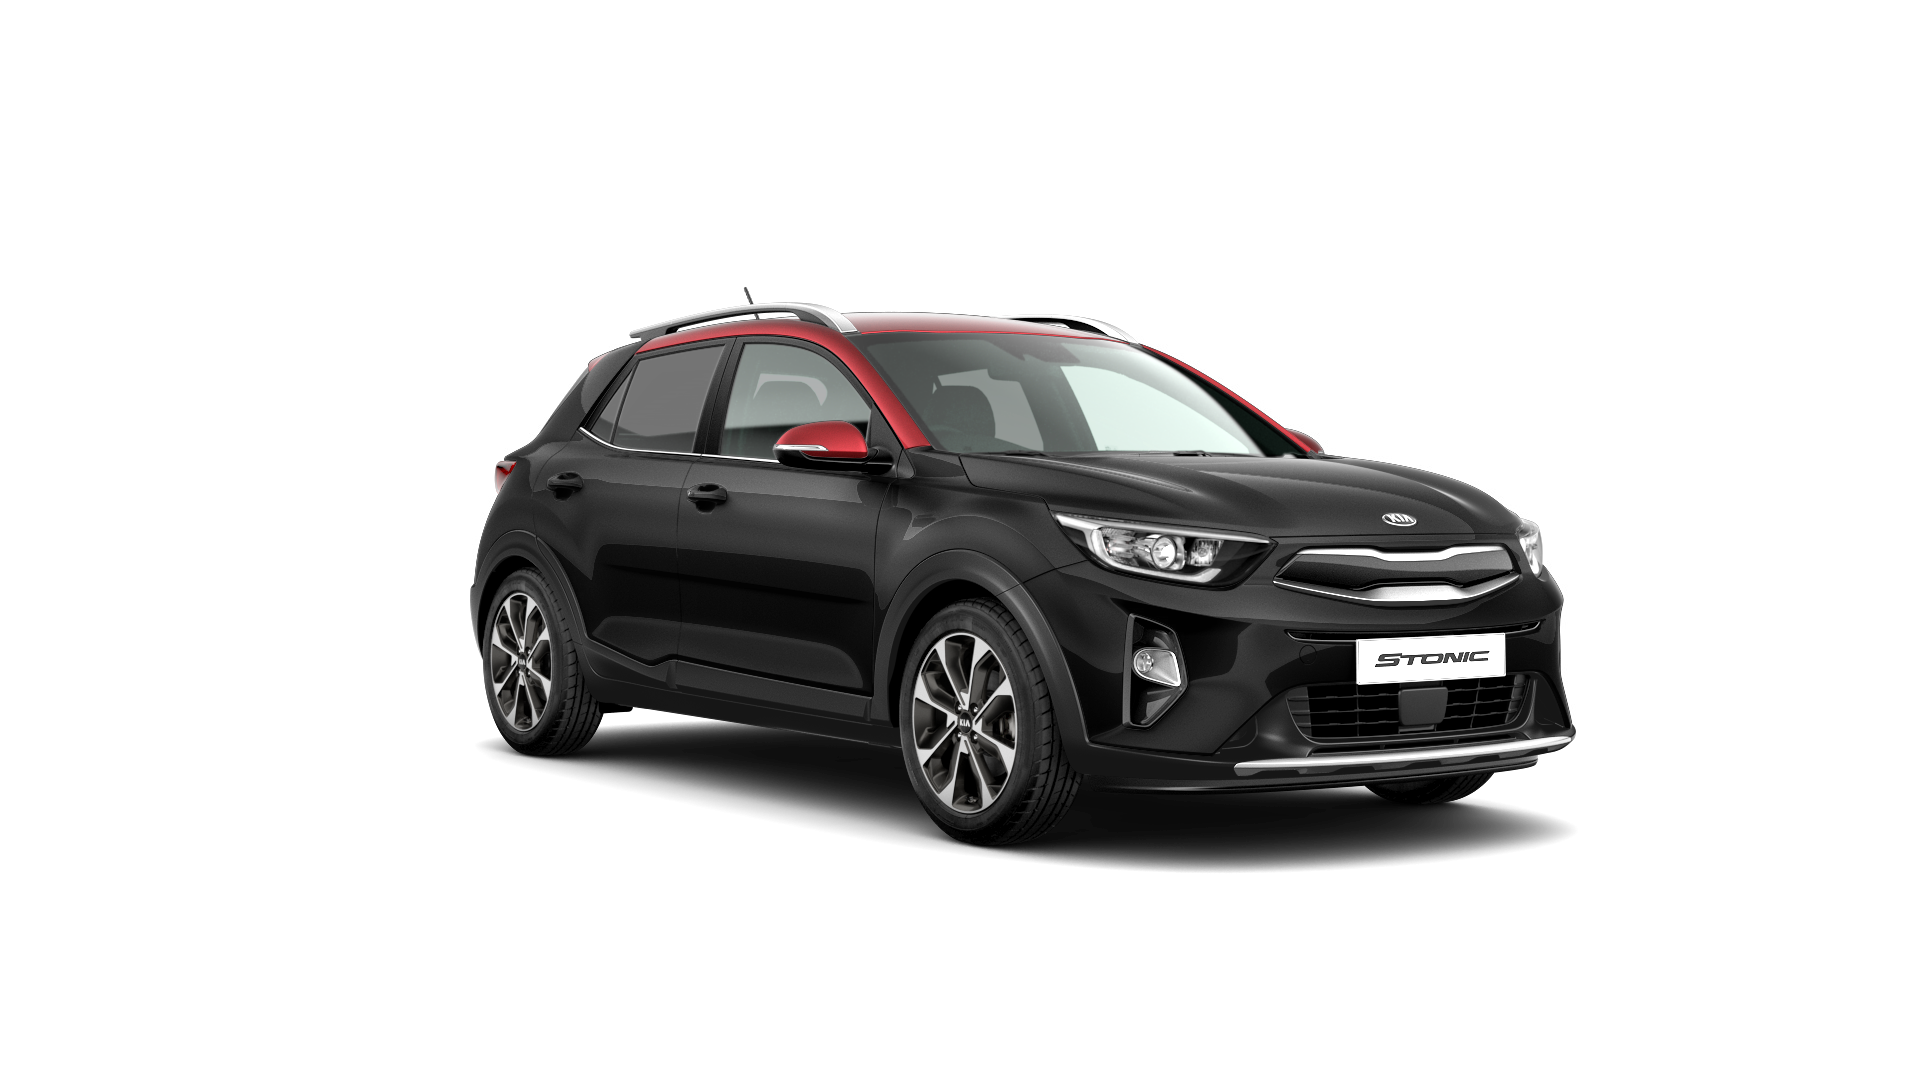 Kia Stonic First Edition - Midnight Black / Red